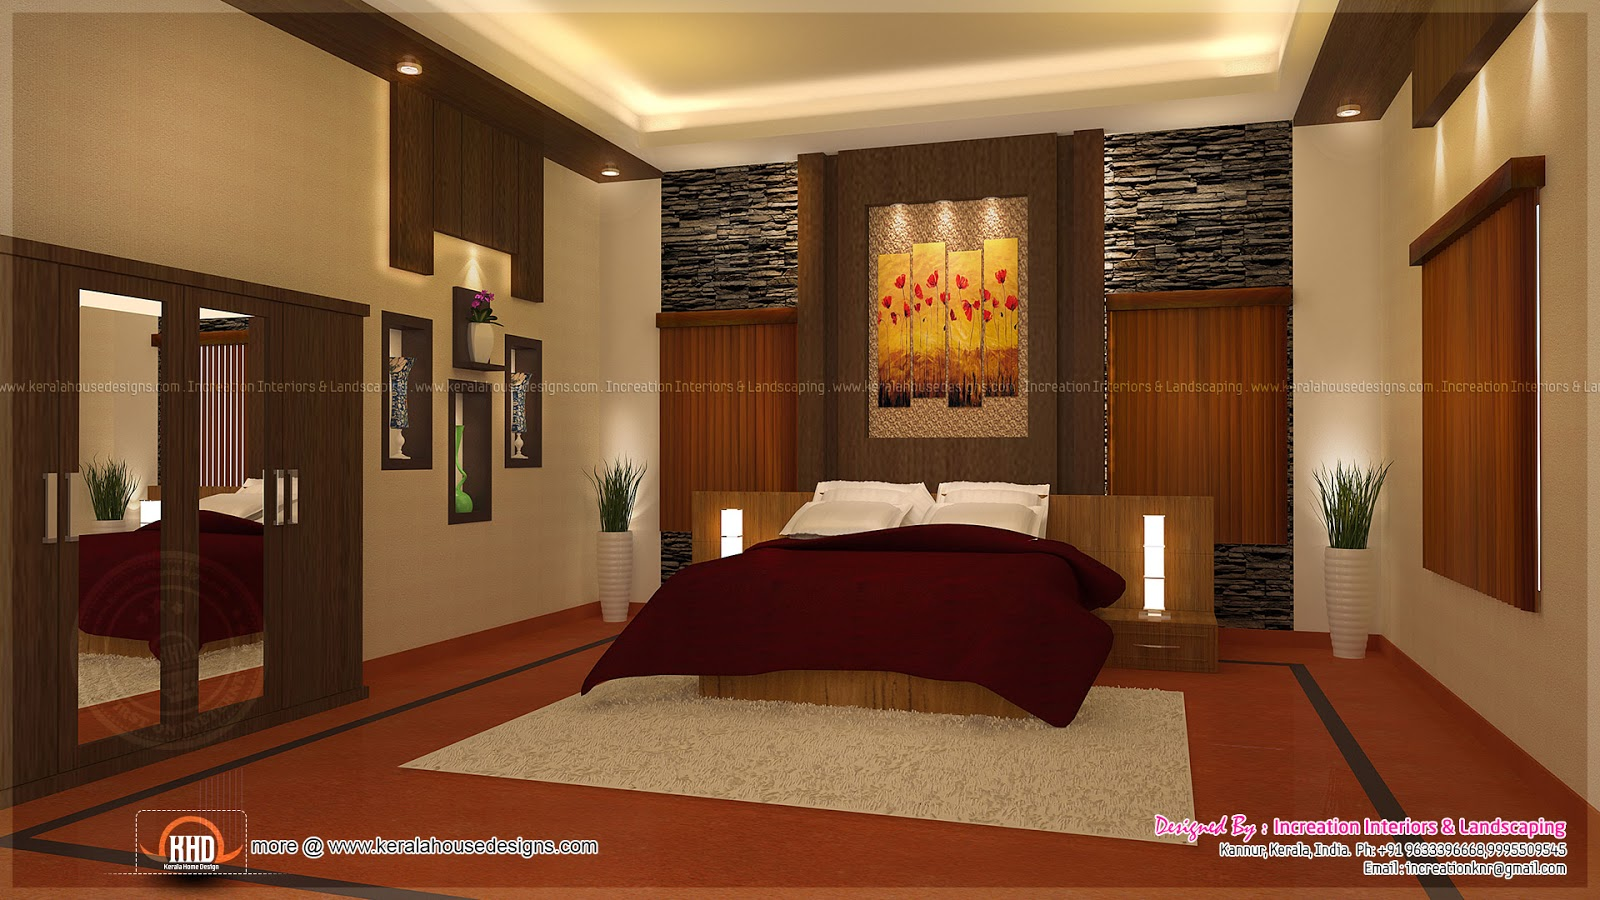 Master bedroom interior Interior design ideas for the home